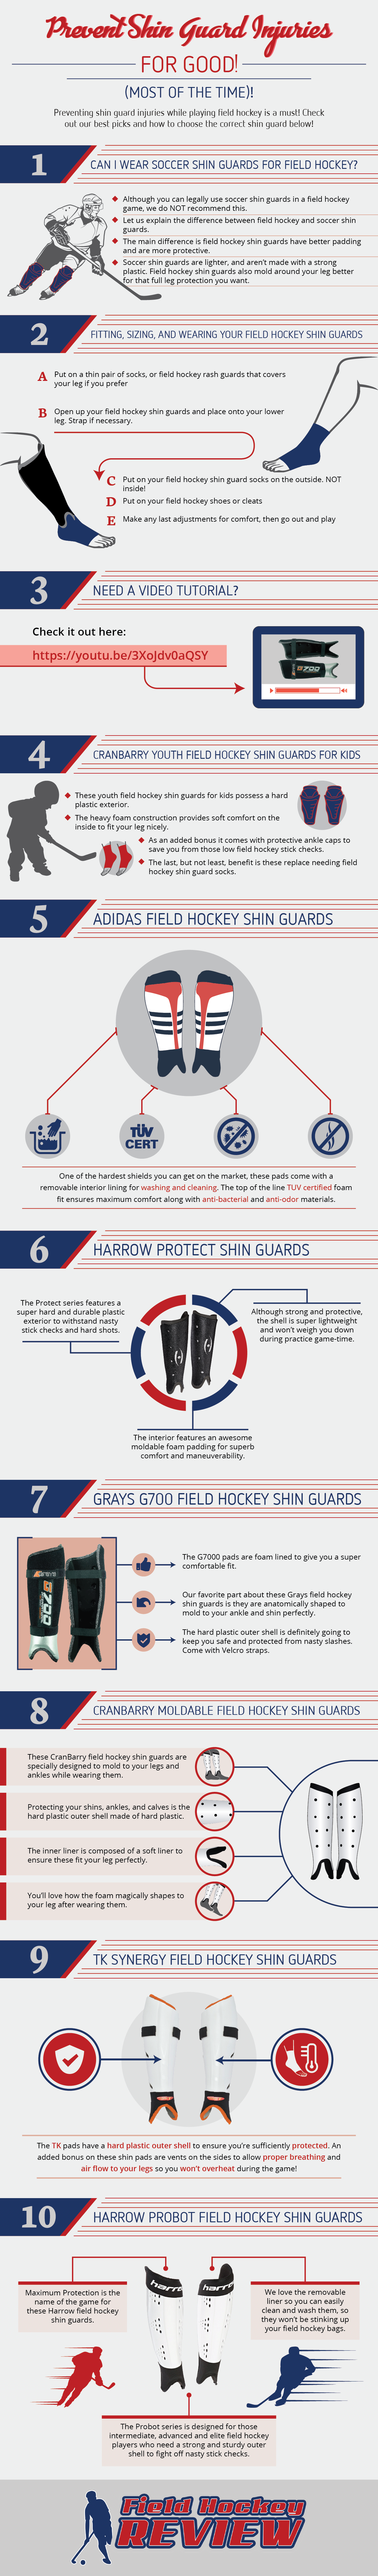 How To Protect Your Shin - Infographic